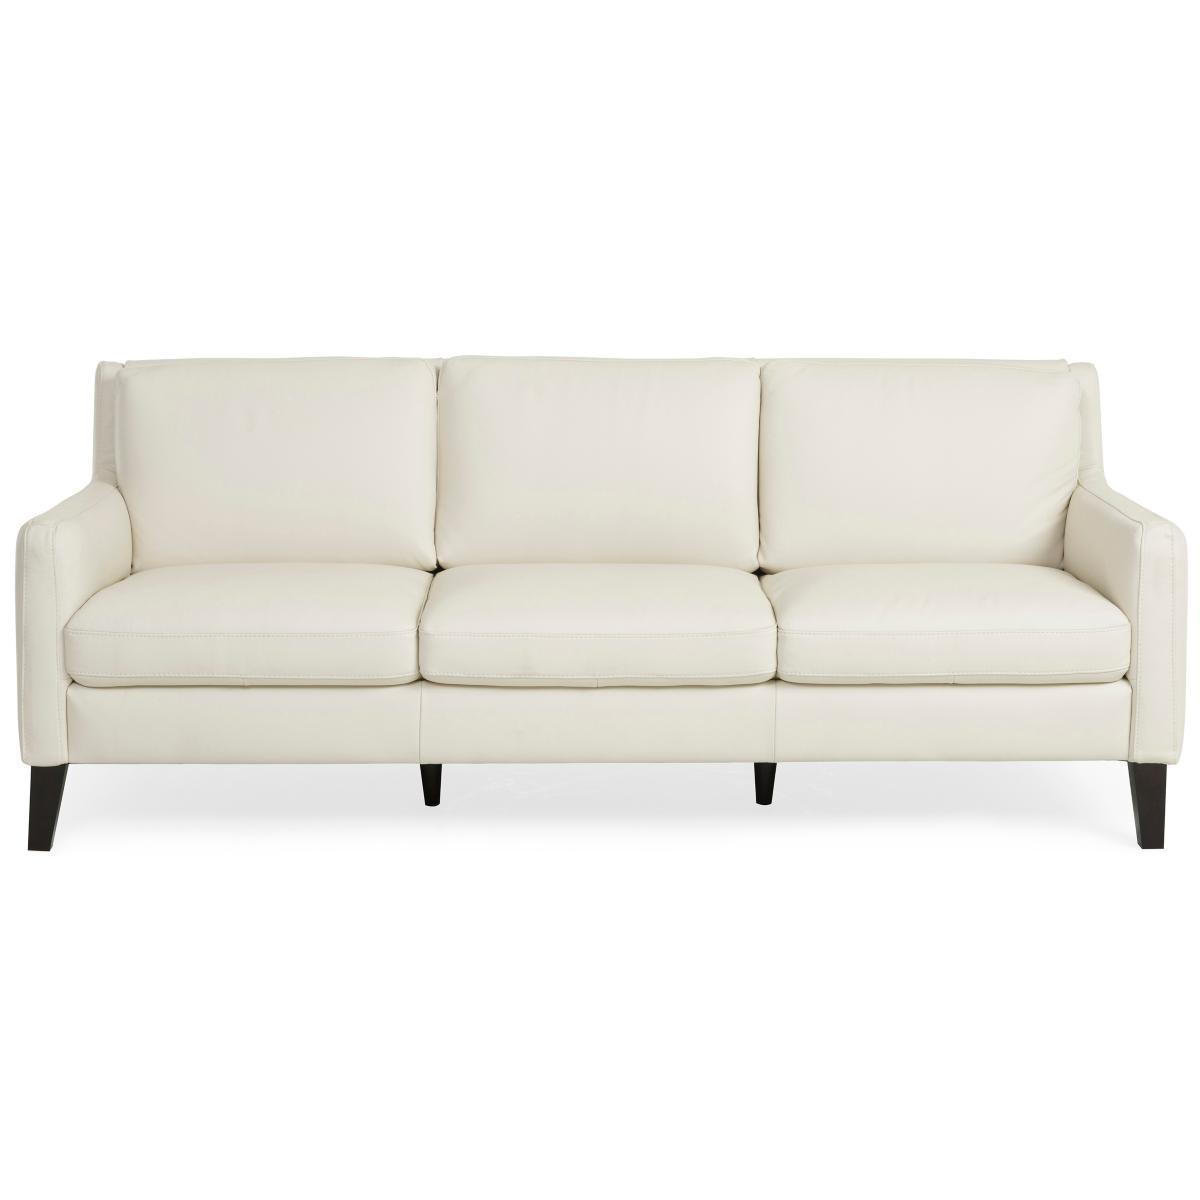 Leather Sofa Ivory Star Furniture